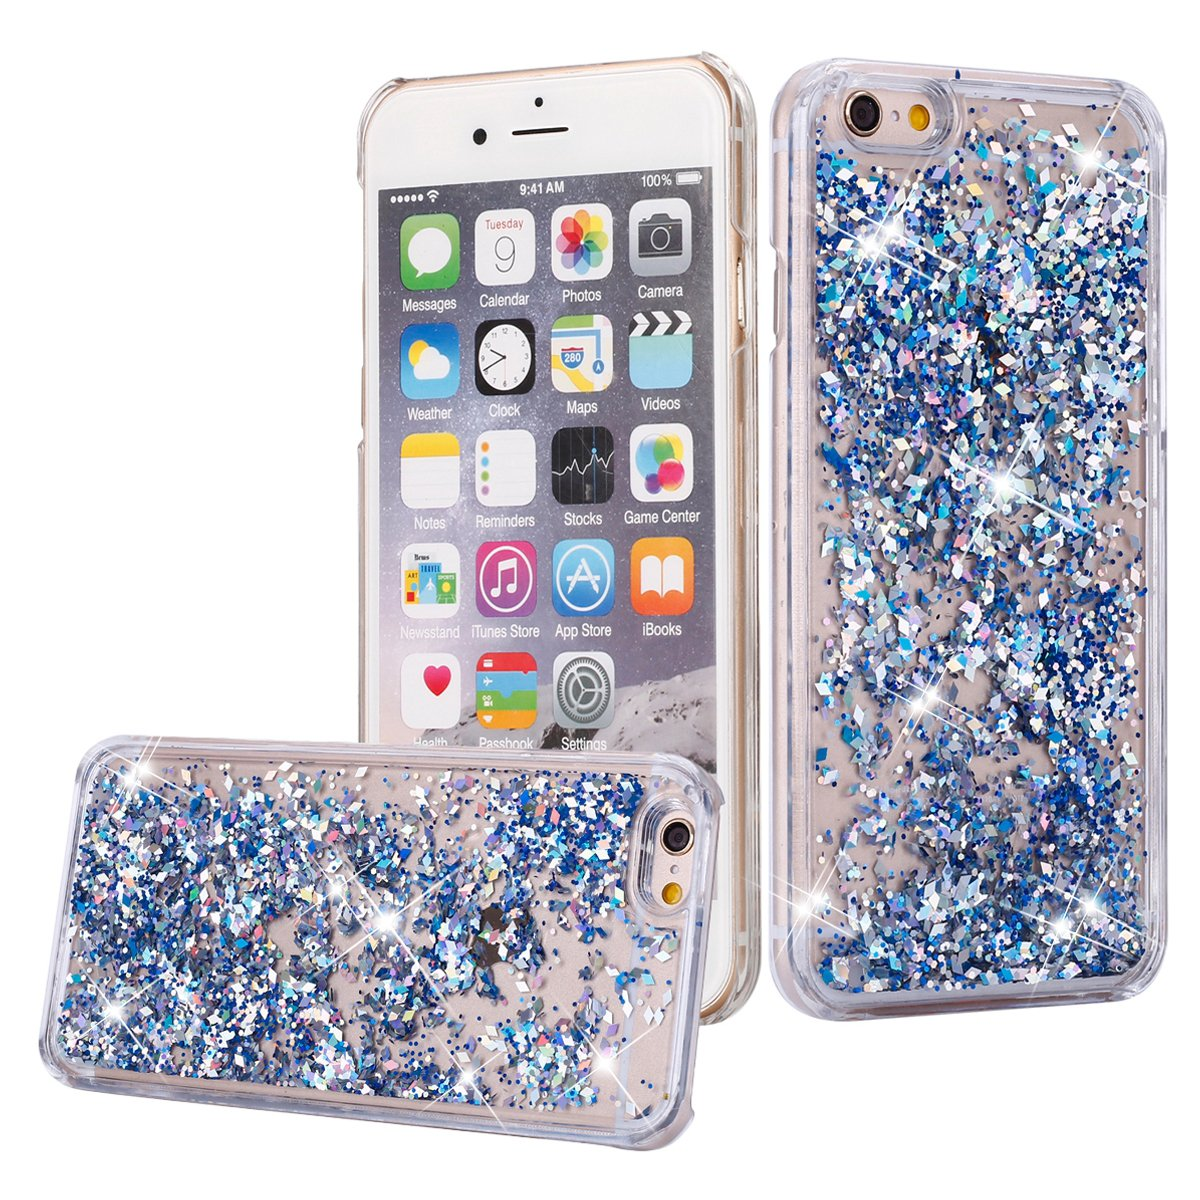 100% authentic 7da80 19d9a Amazon.com: iPhone 4S Case, iPhone 4 / 4S Liquid Glitter Case,Phezen ...